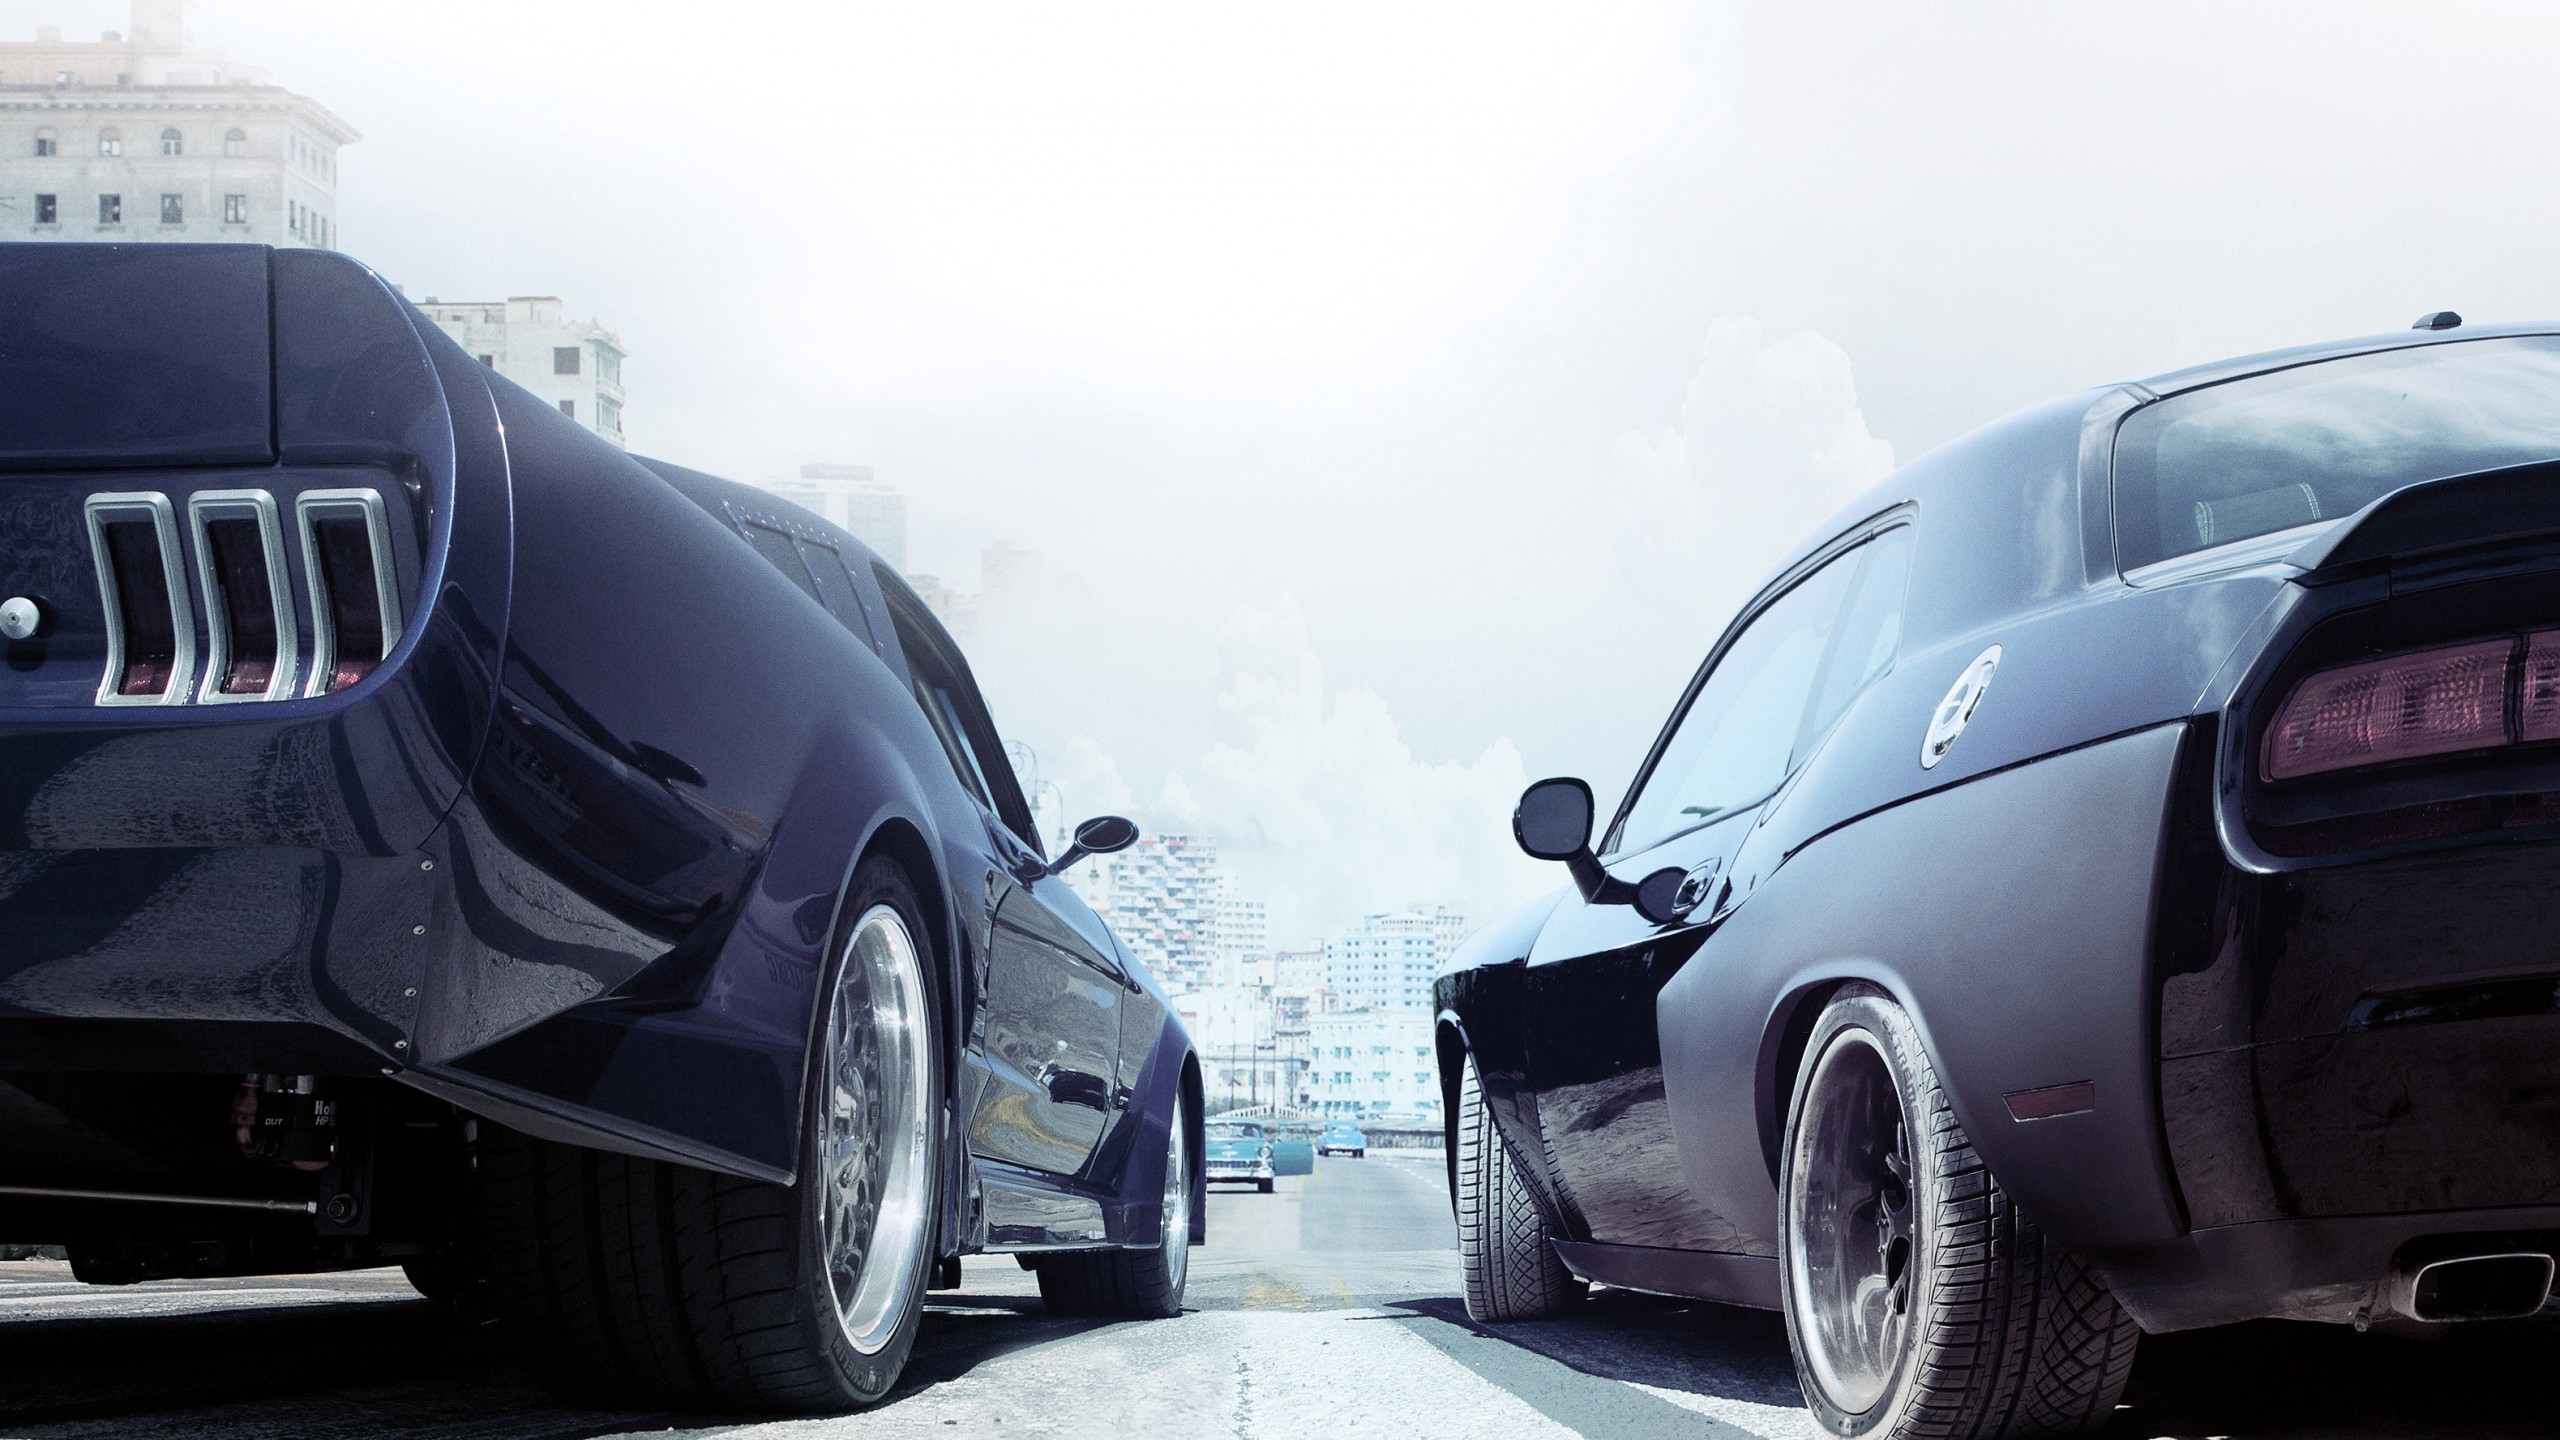 2560x1440 Fast-And-Furious-Cars-wallpaper-wp400110